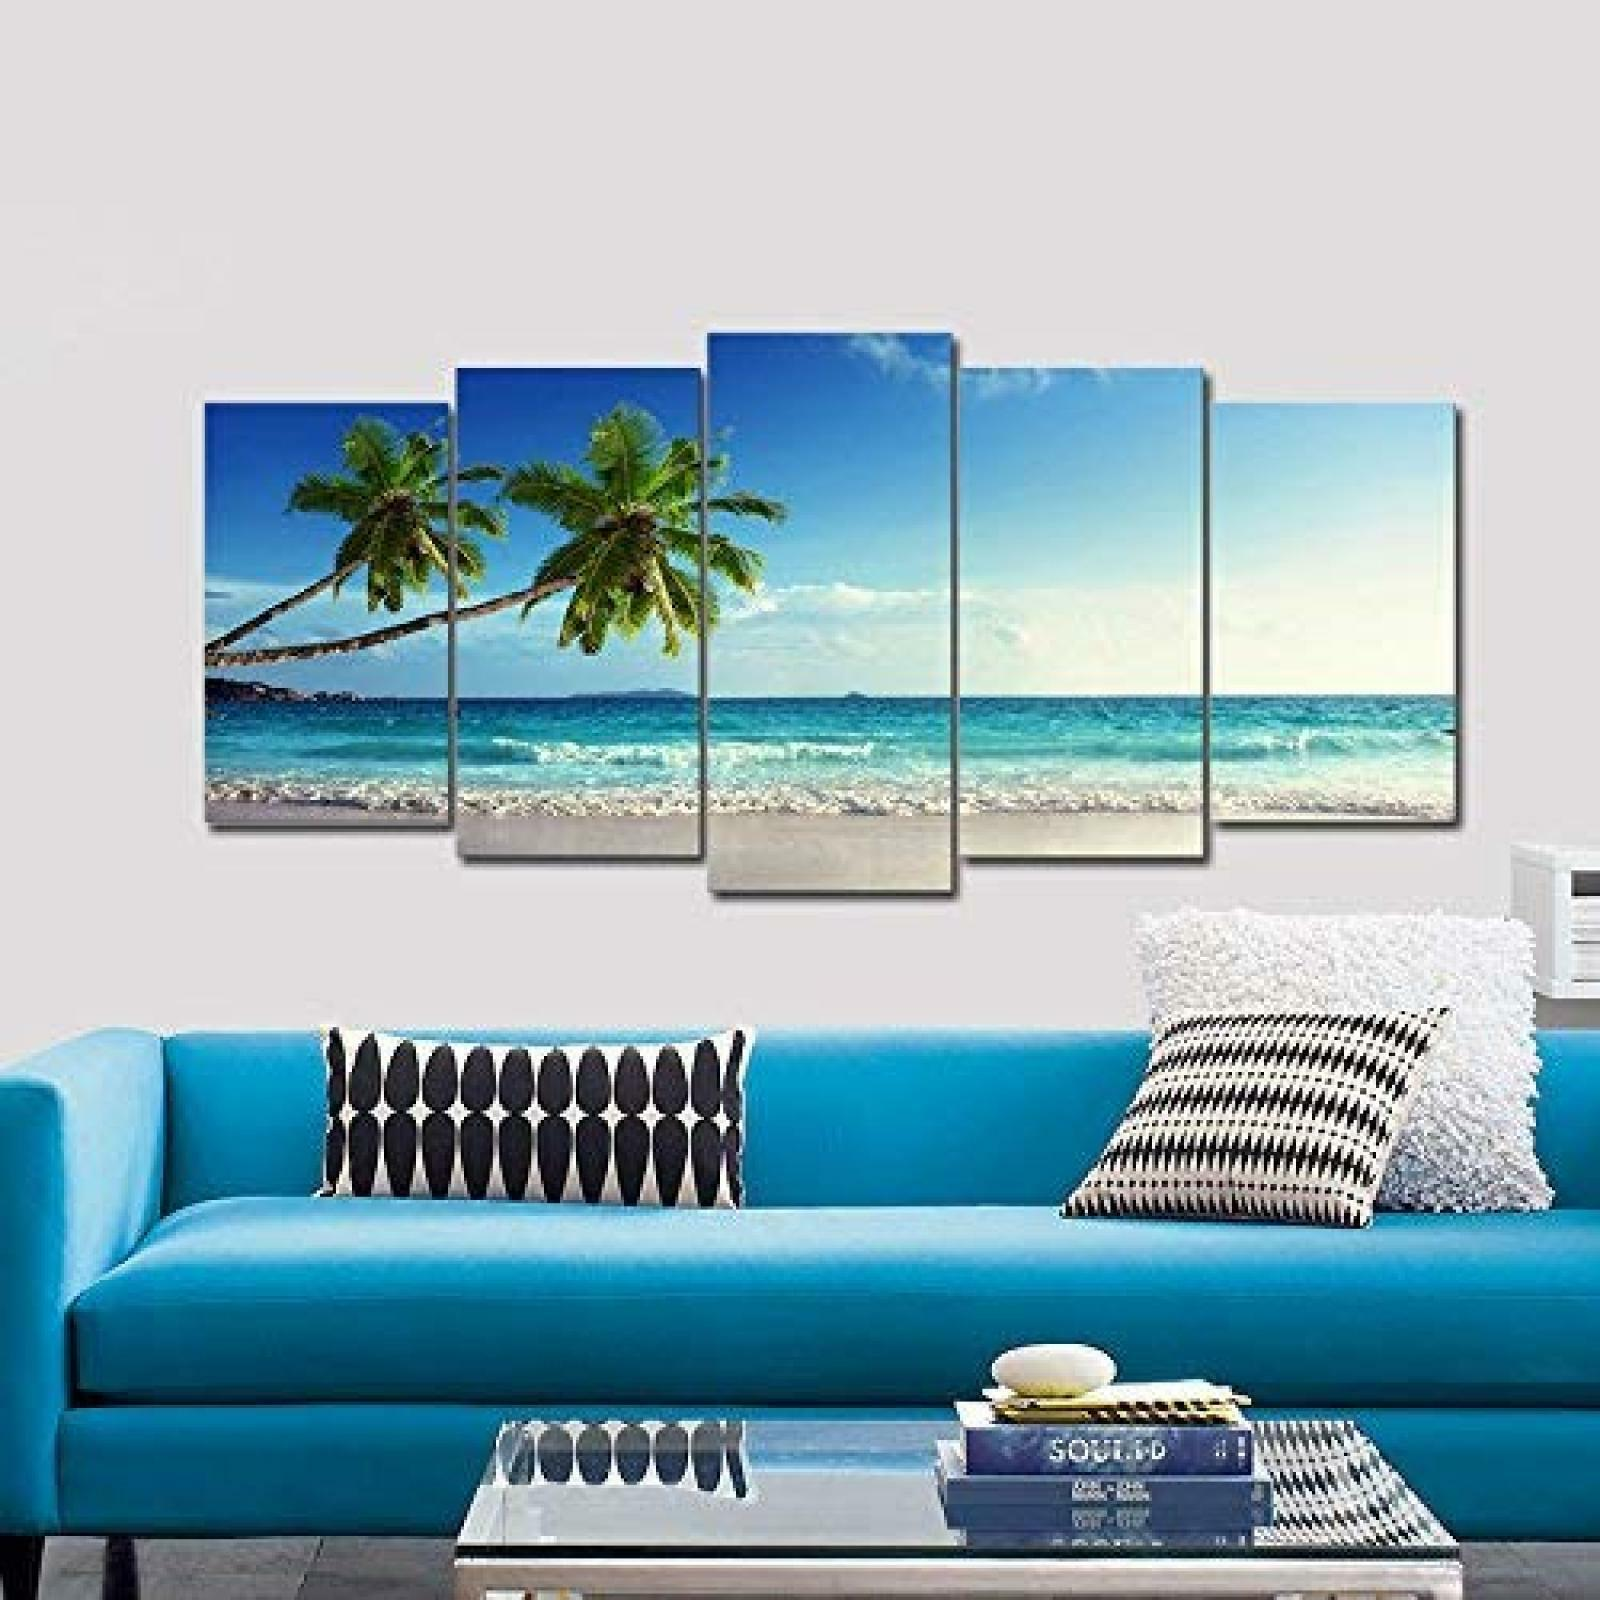 Home Bedroom Living Room Picture Painting Ocean Sea Beach Artwork Wall Bath Gift